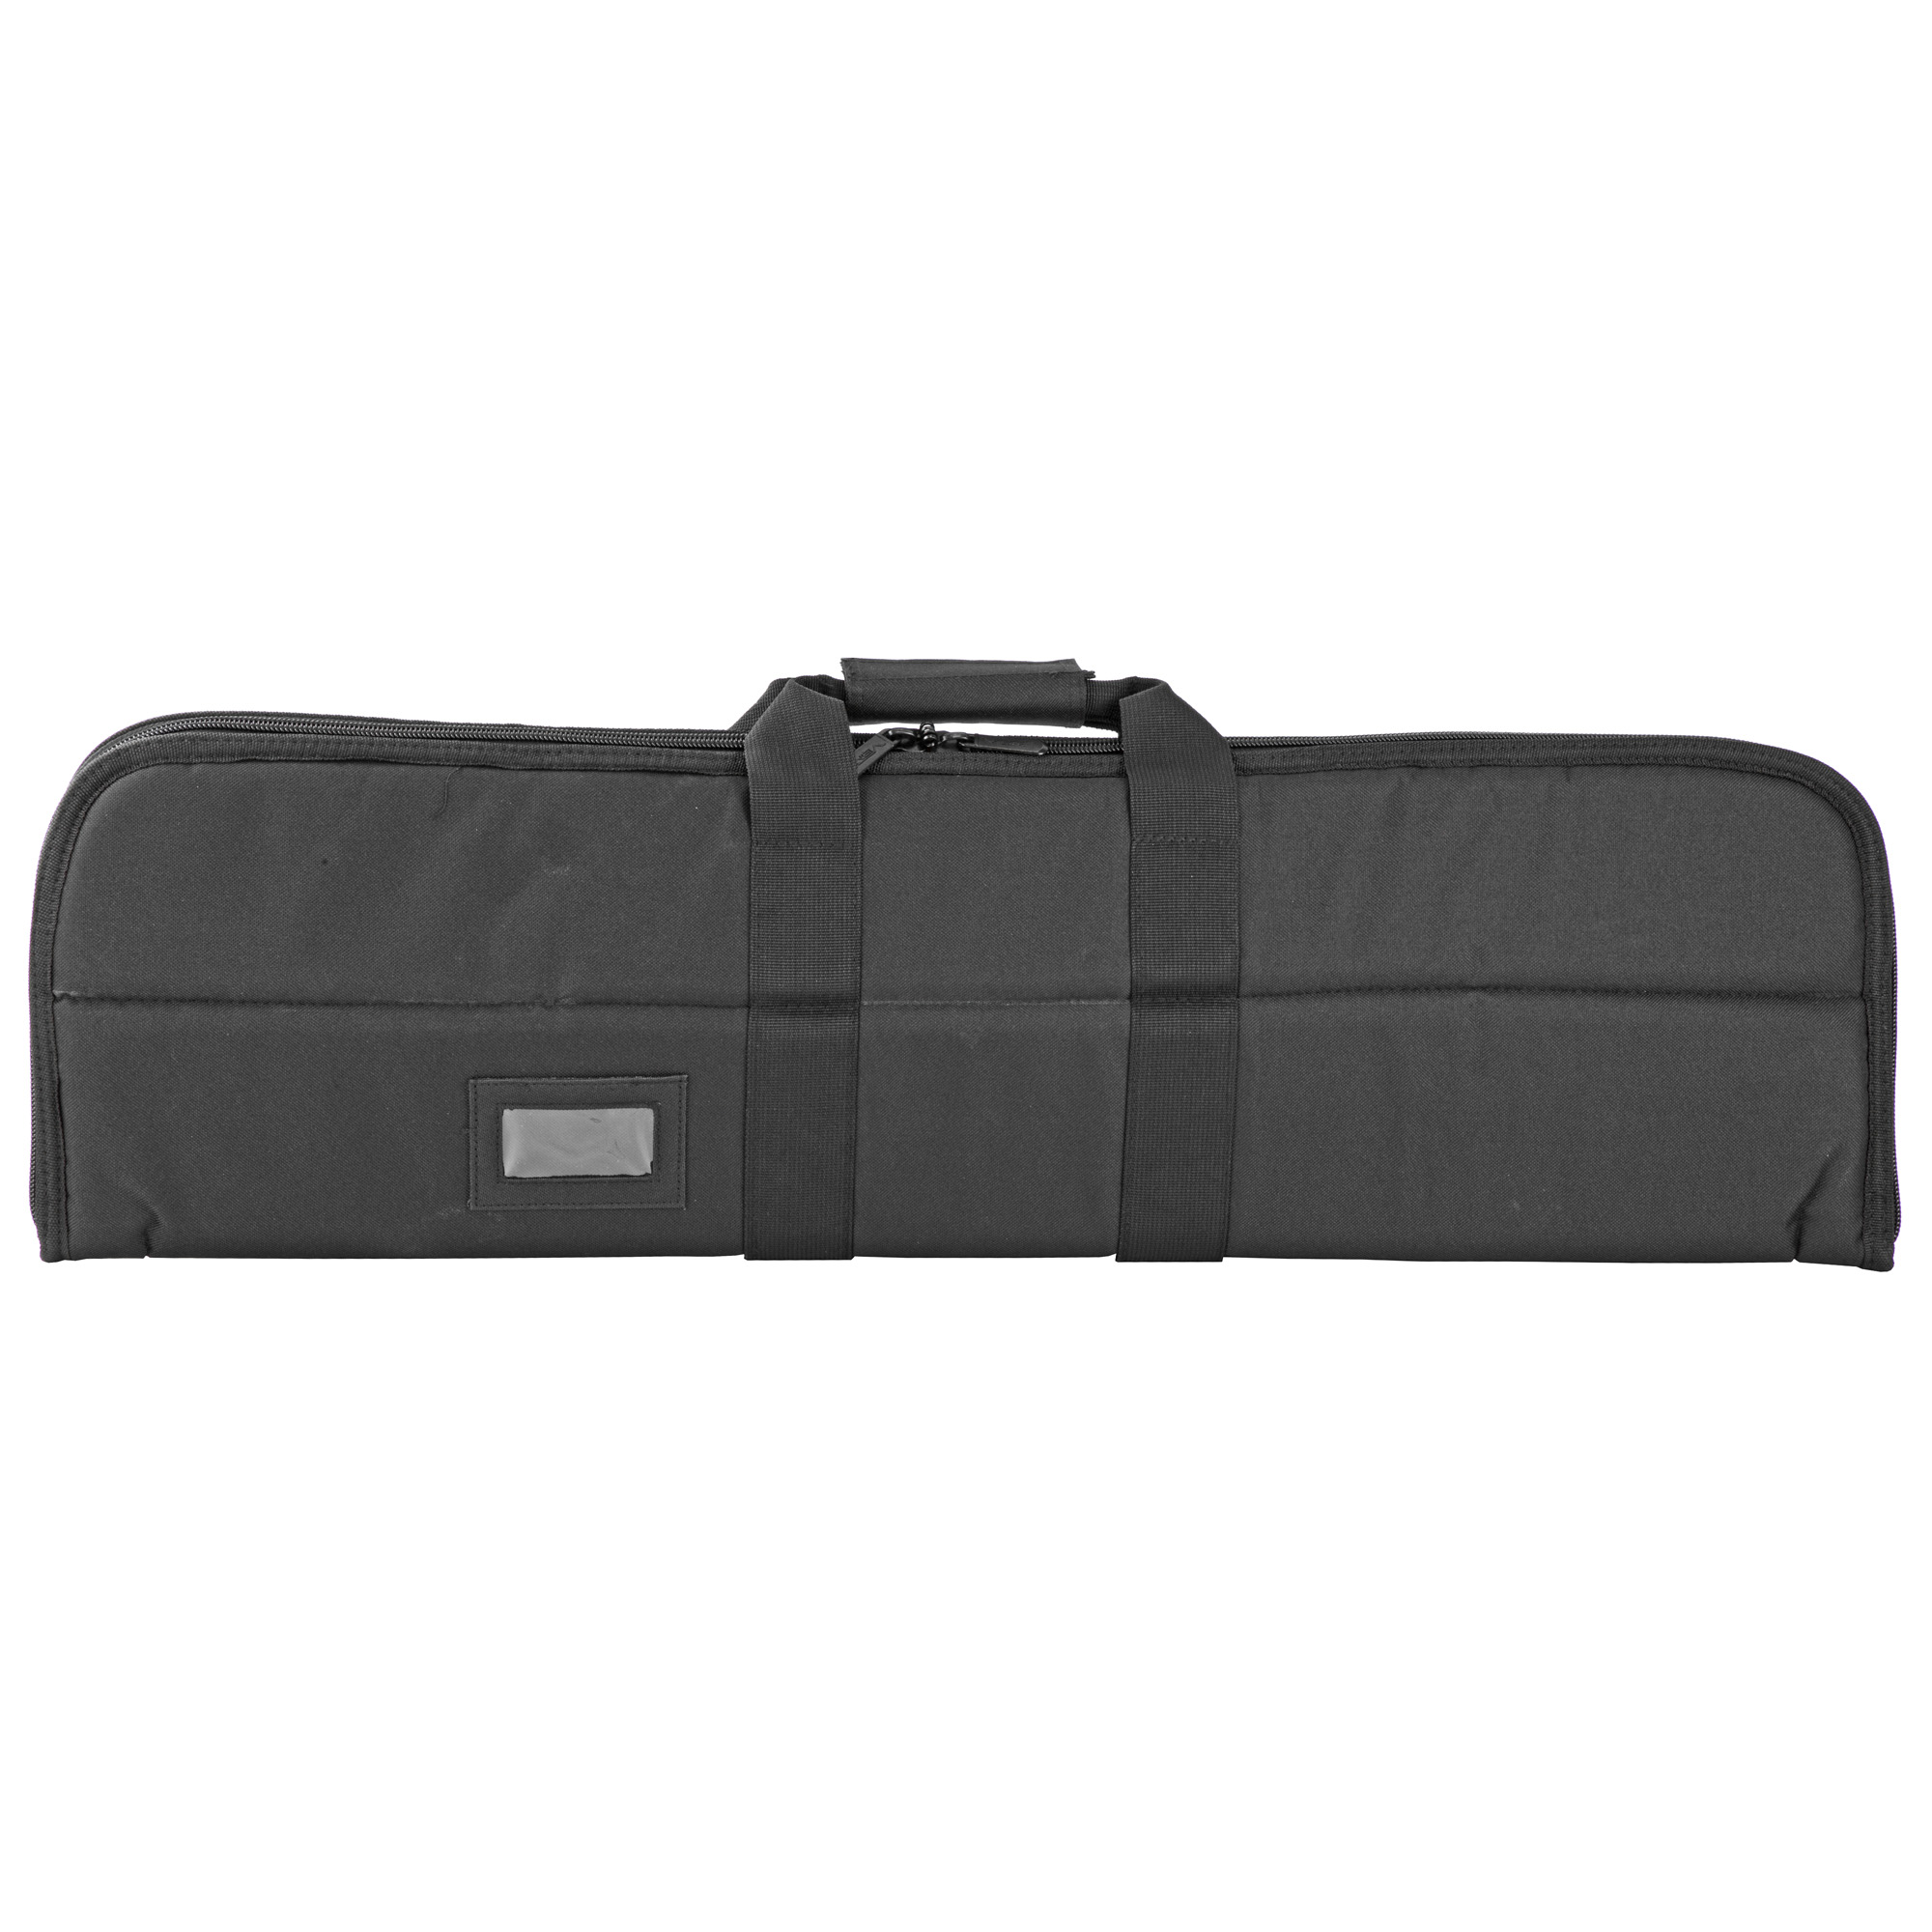 The VISM Gun Case is constructed of tough PVC material and has high density foam inner padding for superior protection.